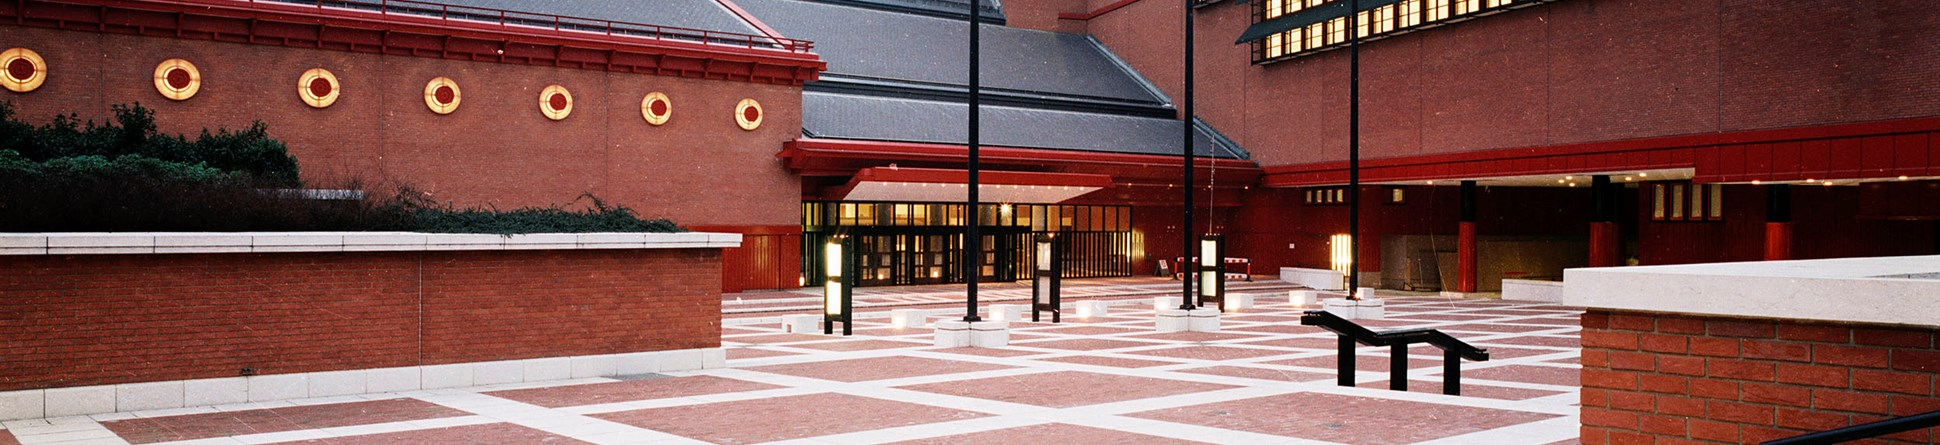 Exterior photo of the British Library